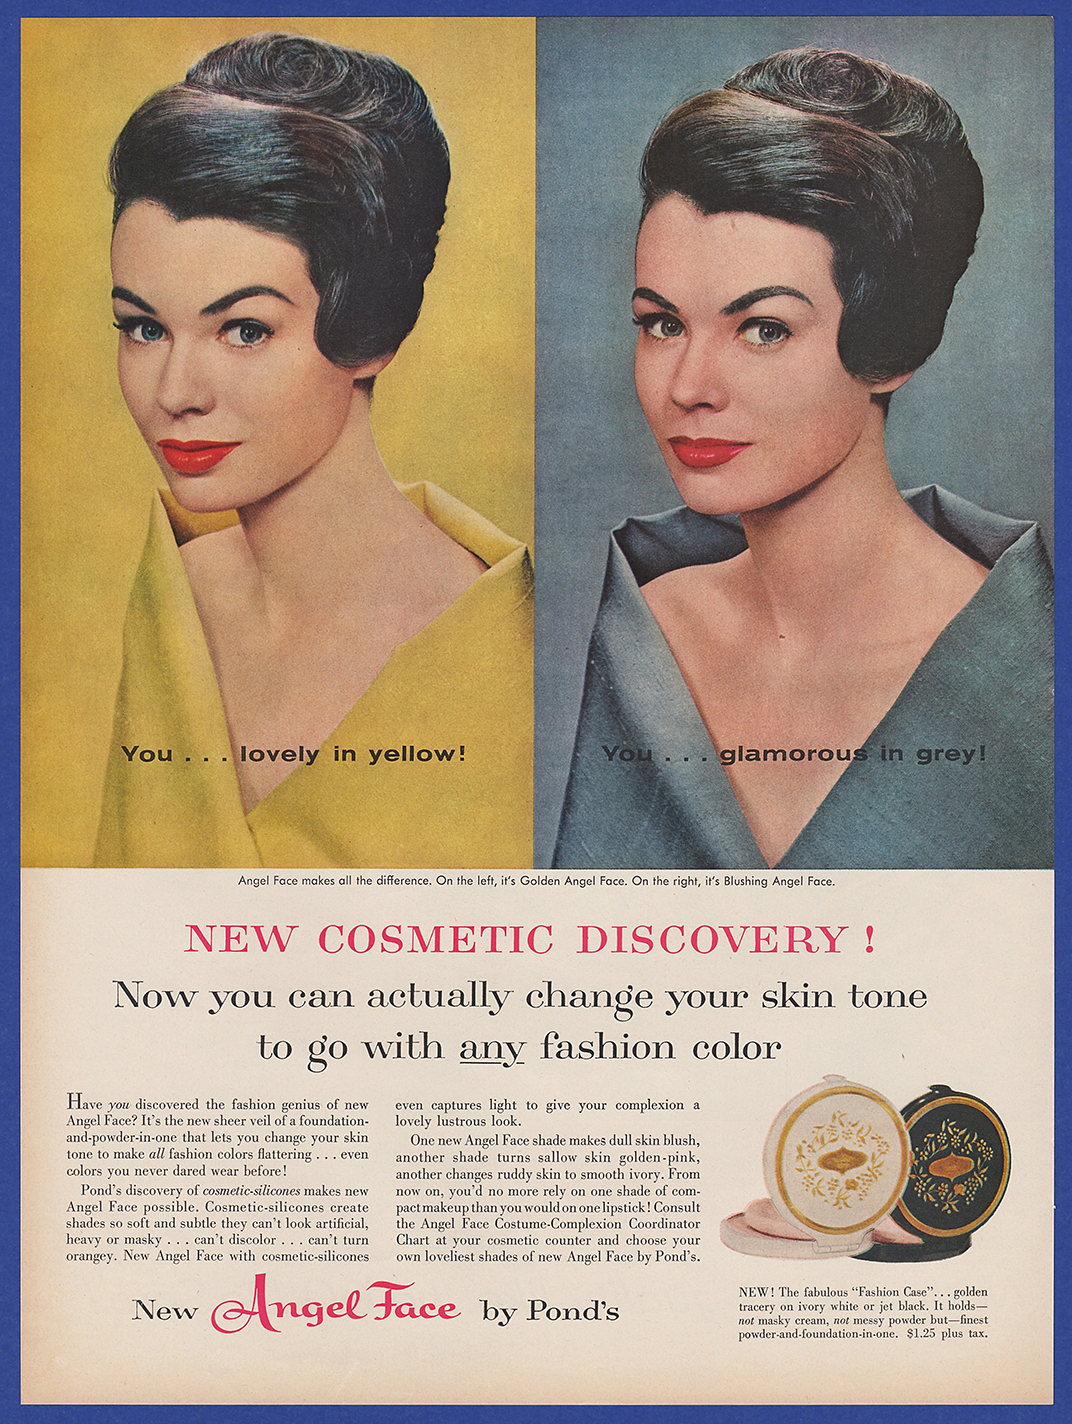 fdf18d2fa3314 Details about Vintage 1959 POND'S Angel Face Women's Fashion Make Up  Cosmetics Print Ad 50's